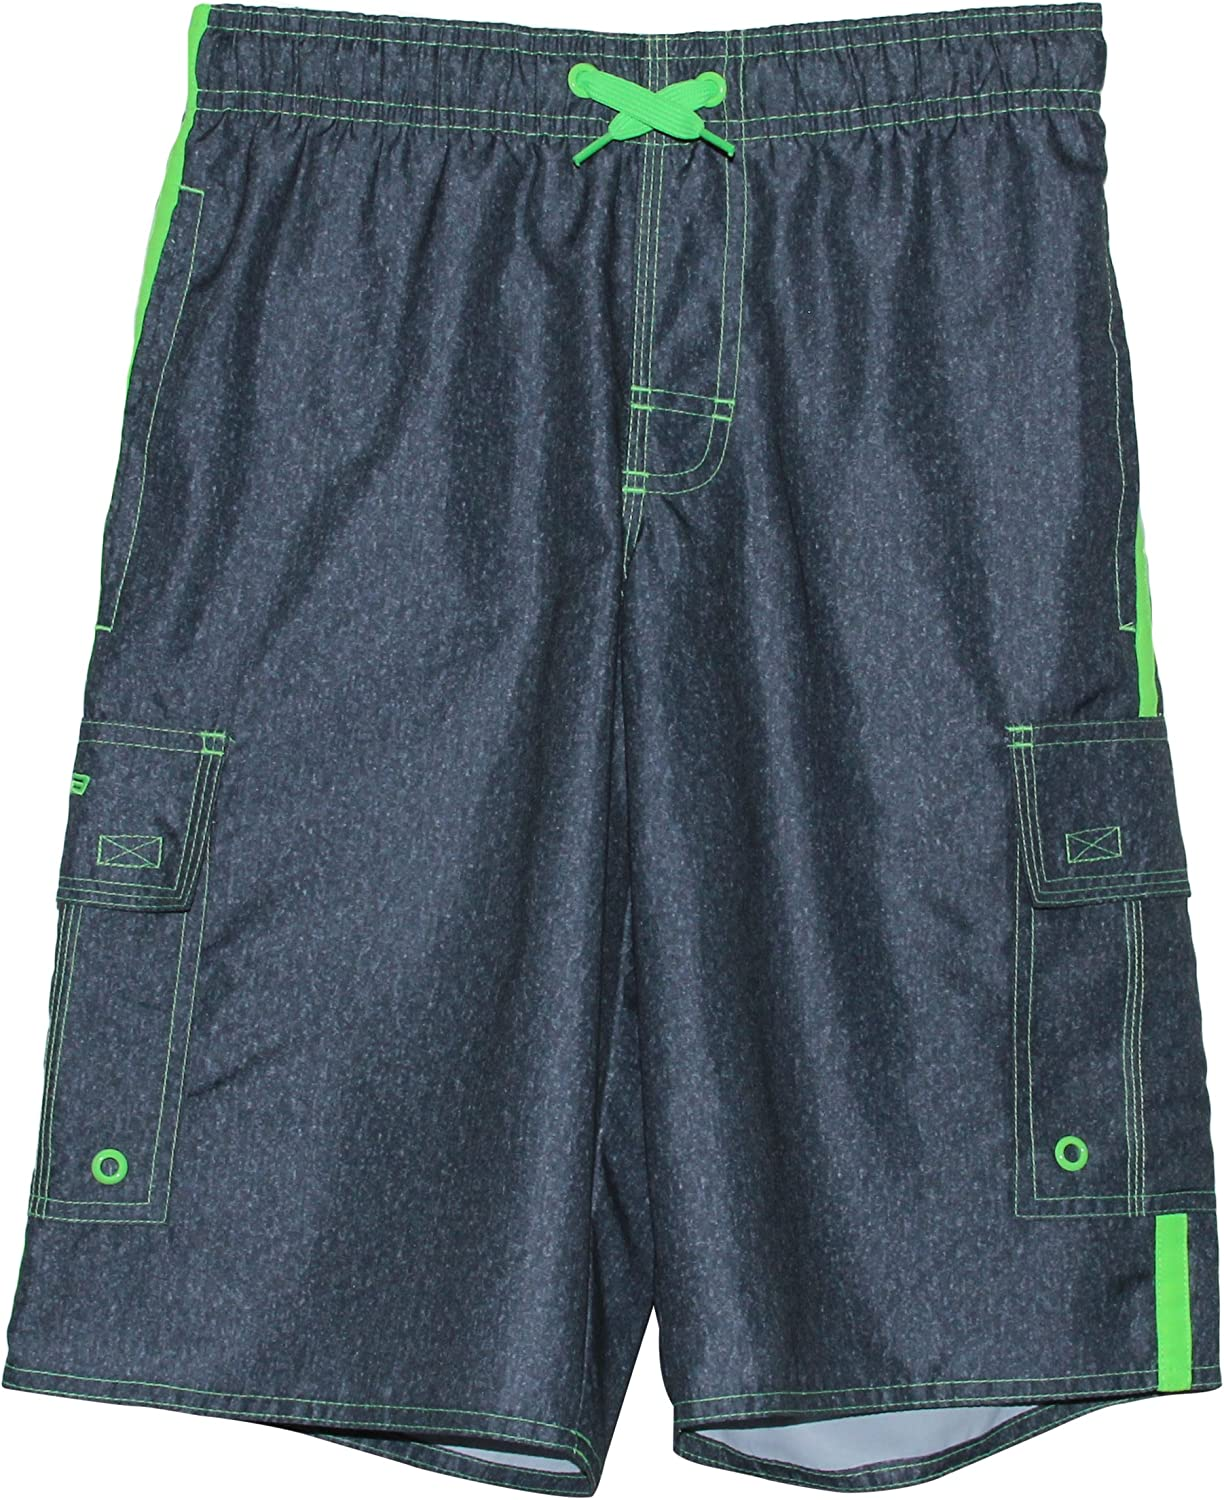 LAGUNA Boys Locked in Drawstring Boardshorts Swim Trunks UPF 50+